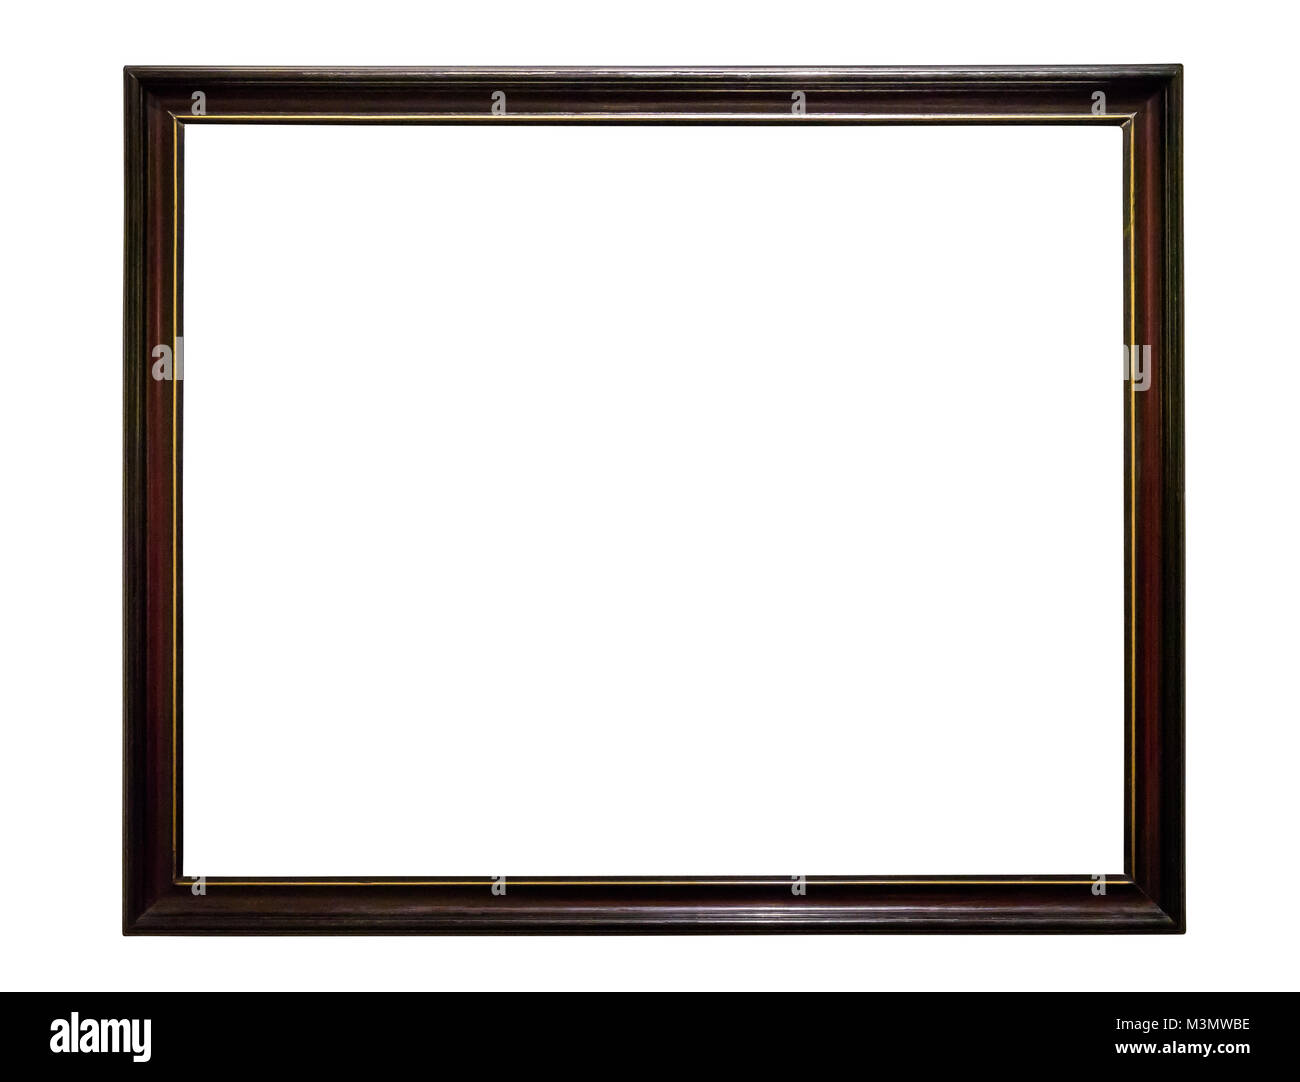 Dark wooden picture frame isolated on white background with clipping path Stock Photo